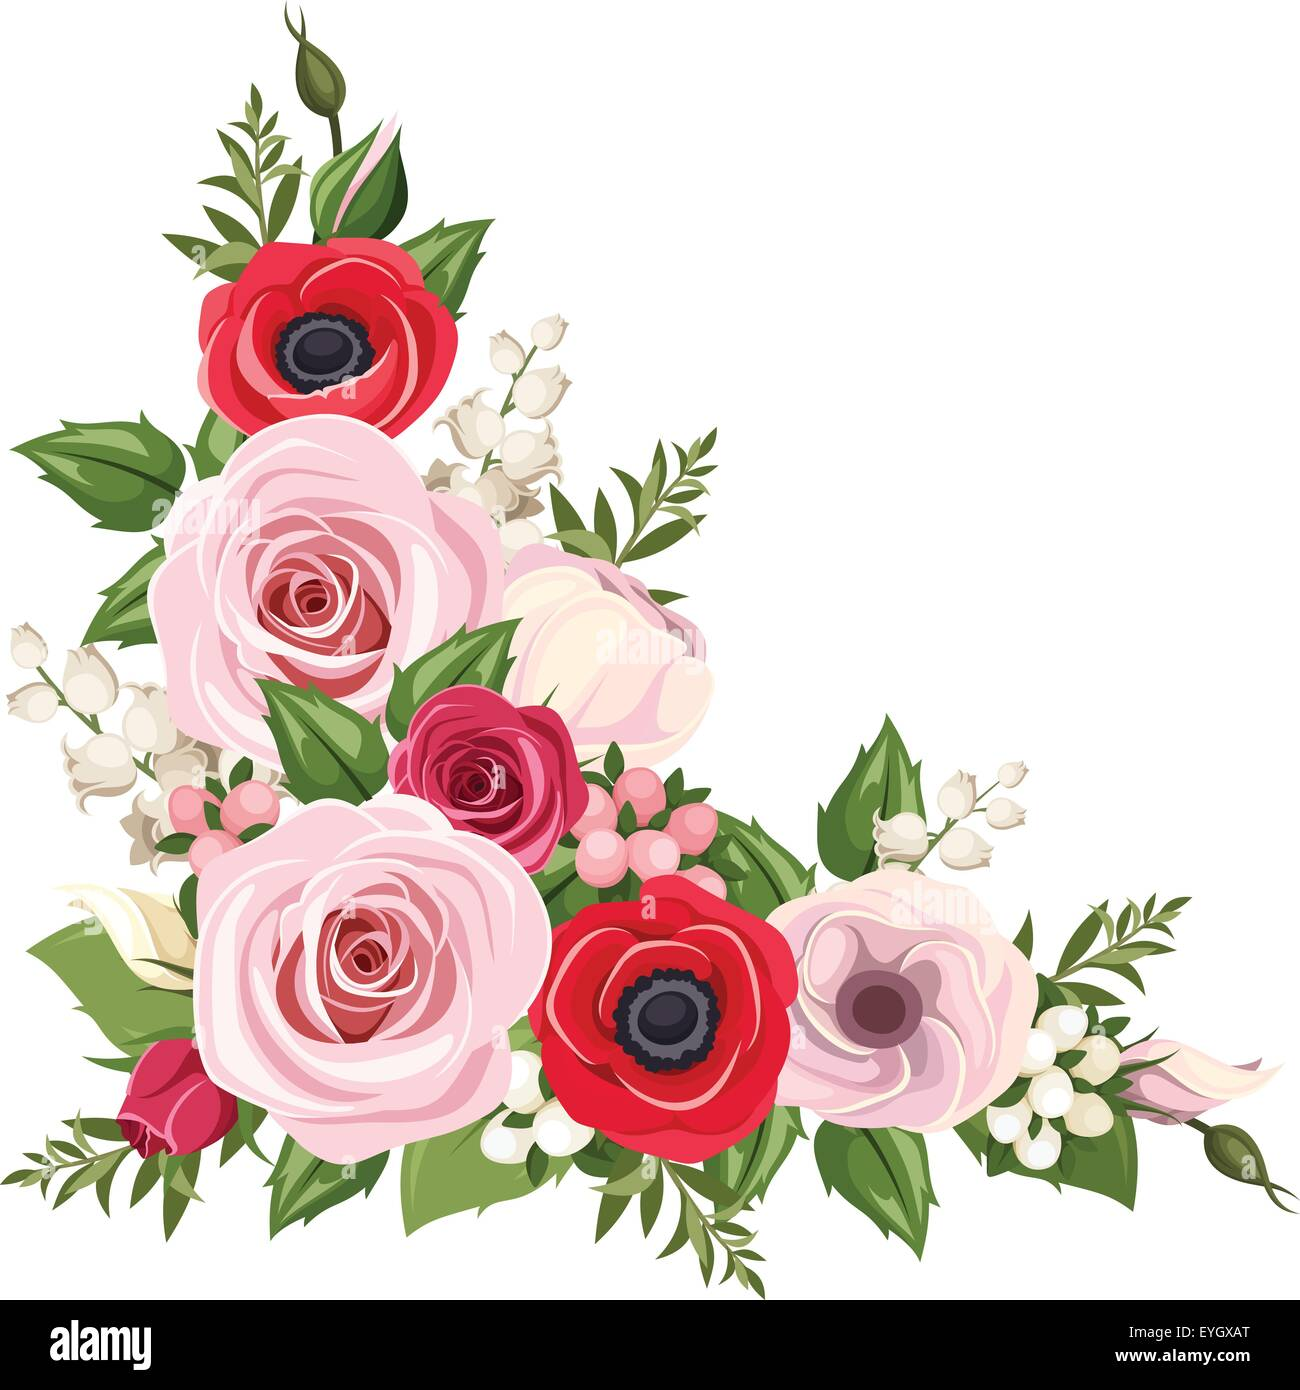 Red And Pink Roses Lisianthus And Anemone Flowers And Lily Of The